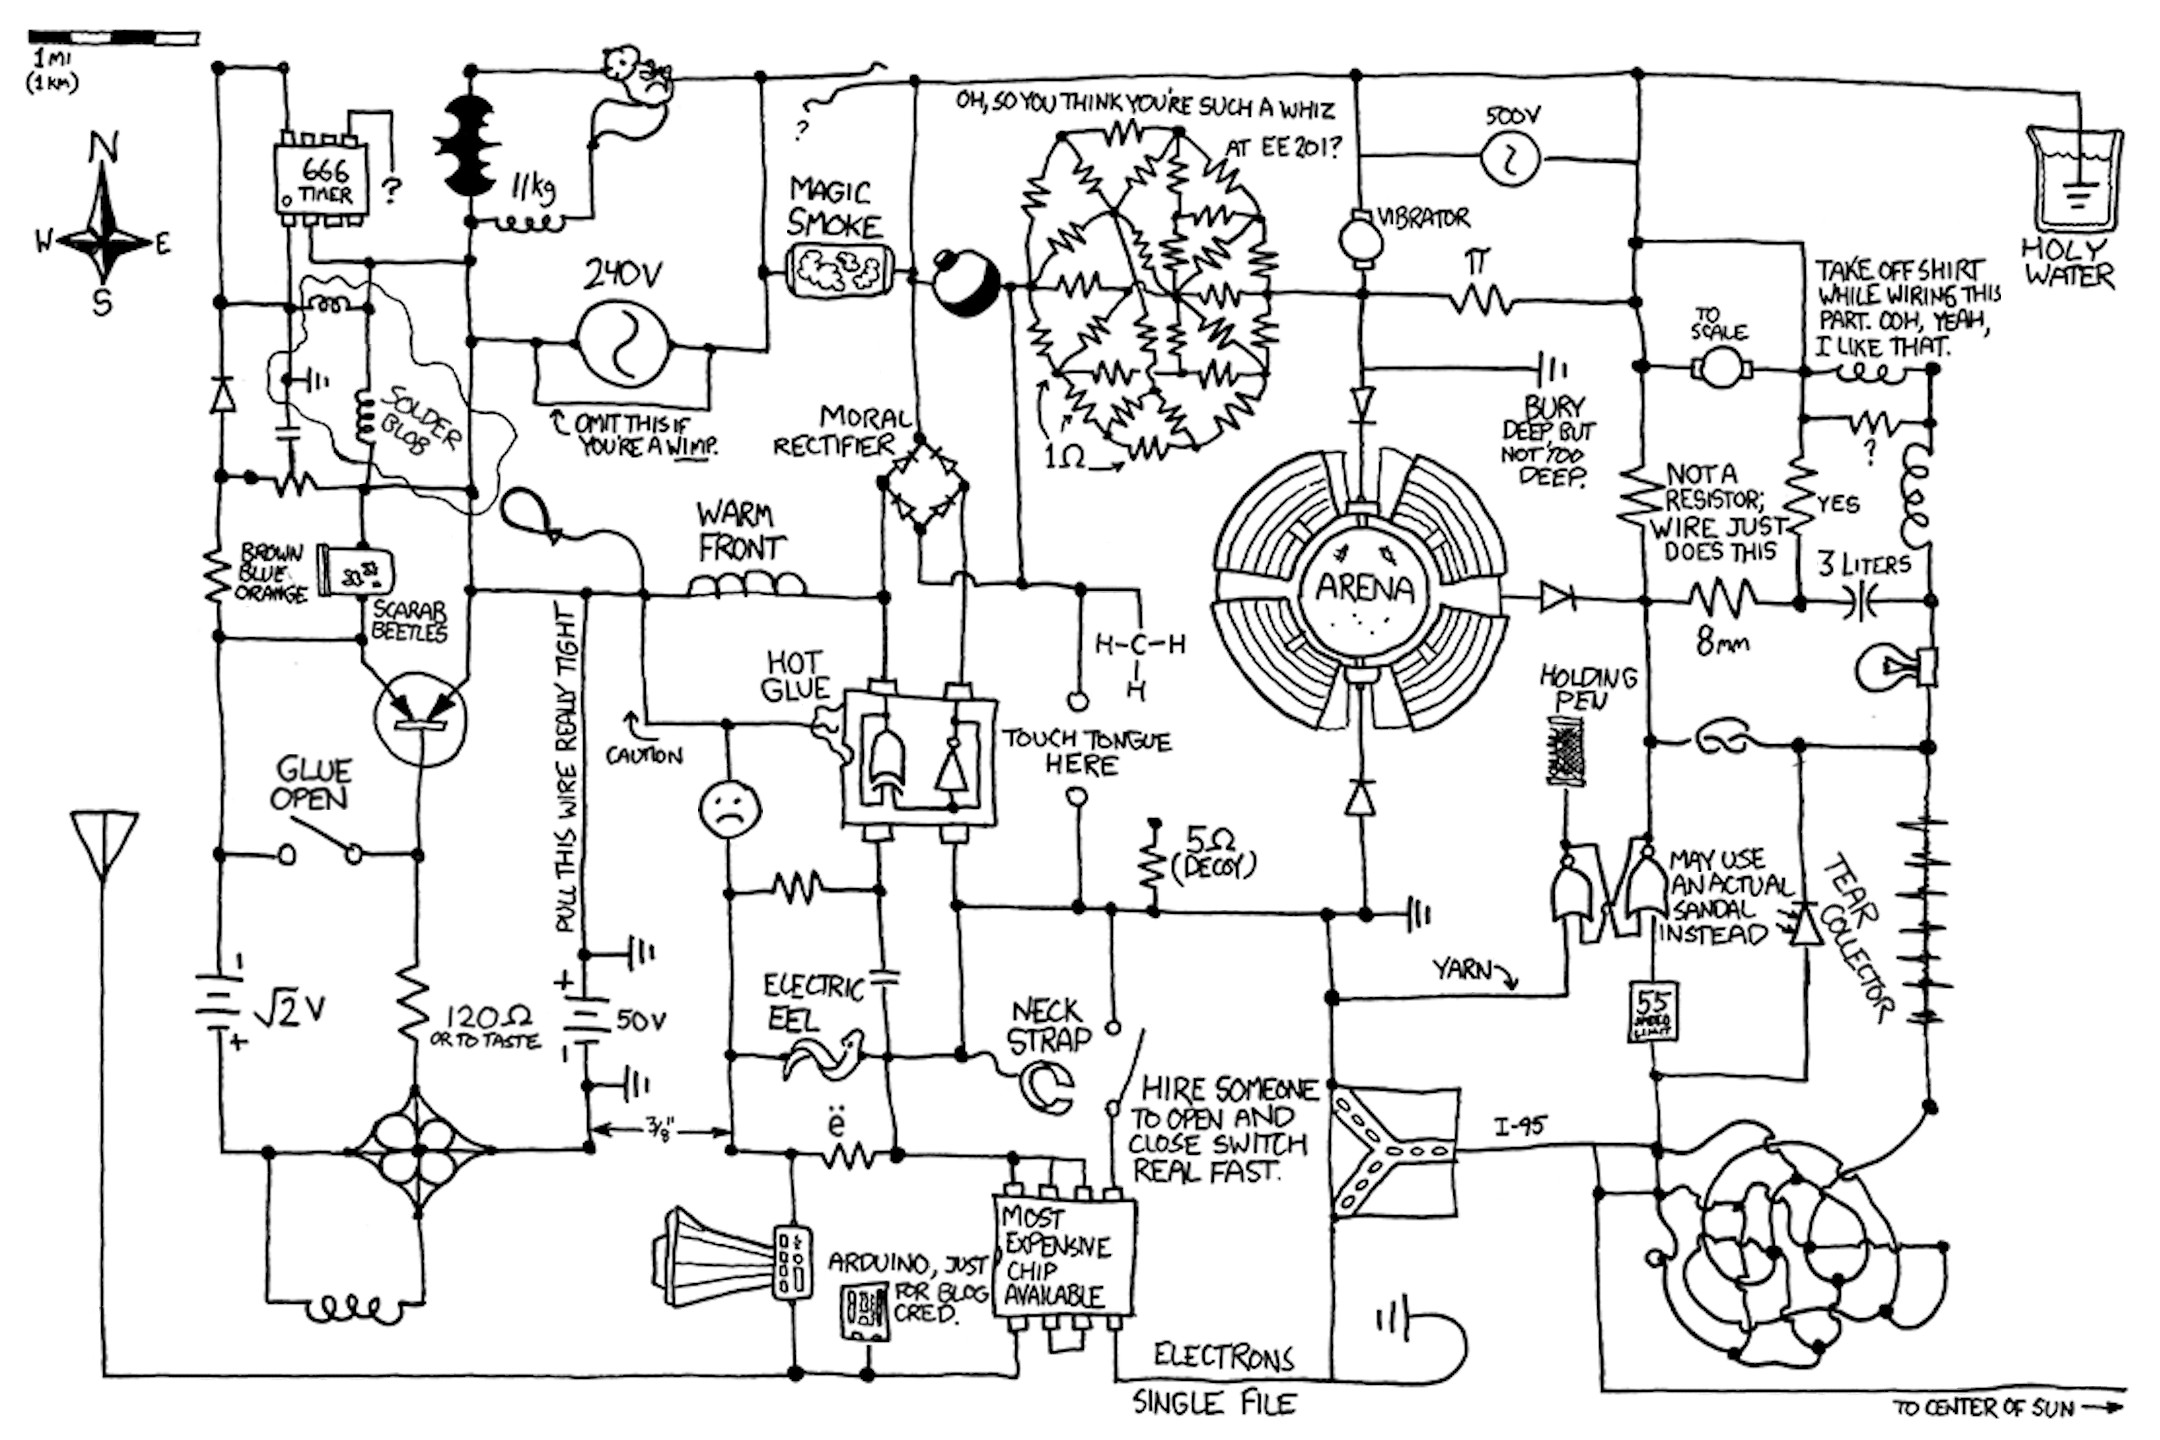 I rotated all of the text in Circuit Diagram xkcd 730 so it can be used as a 2160x1440 wallpaper Let me know what you think